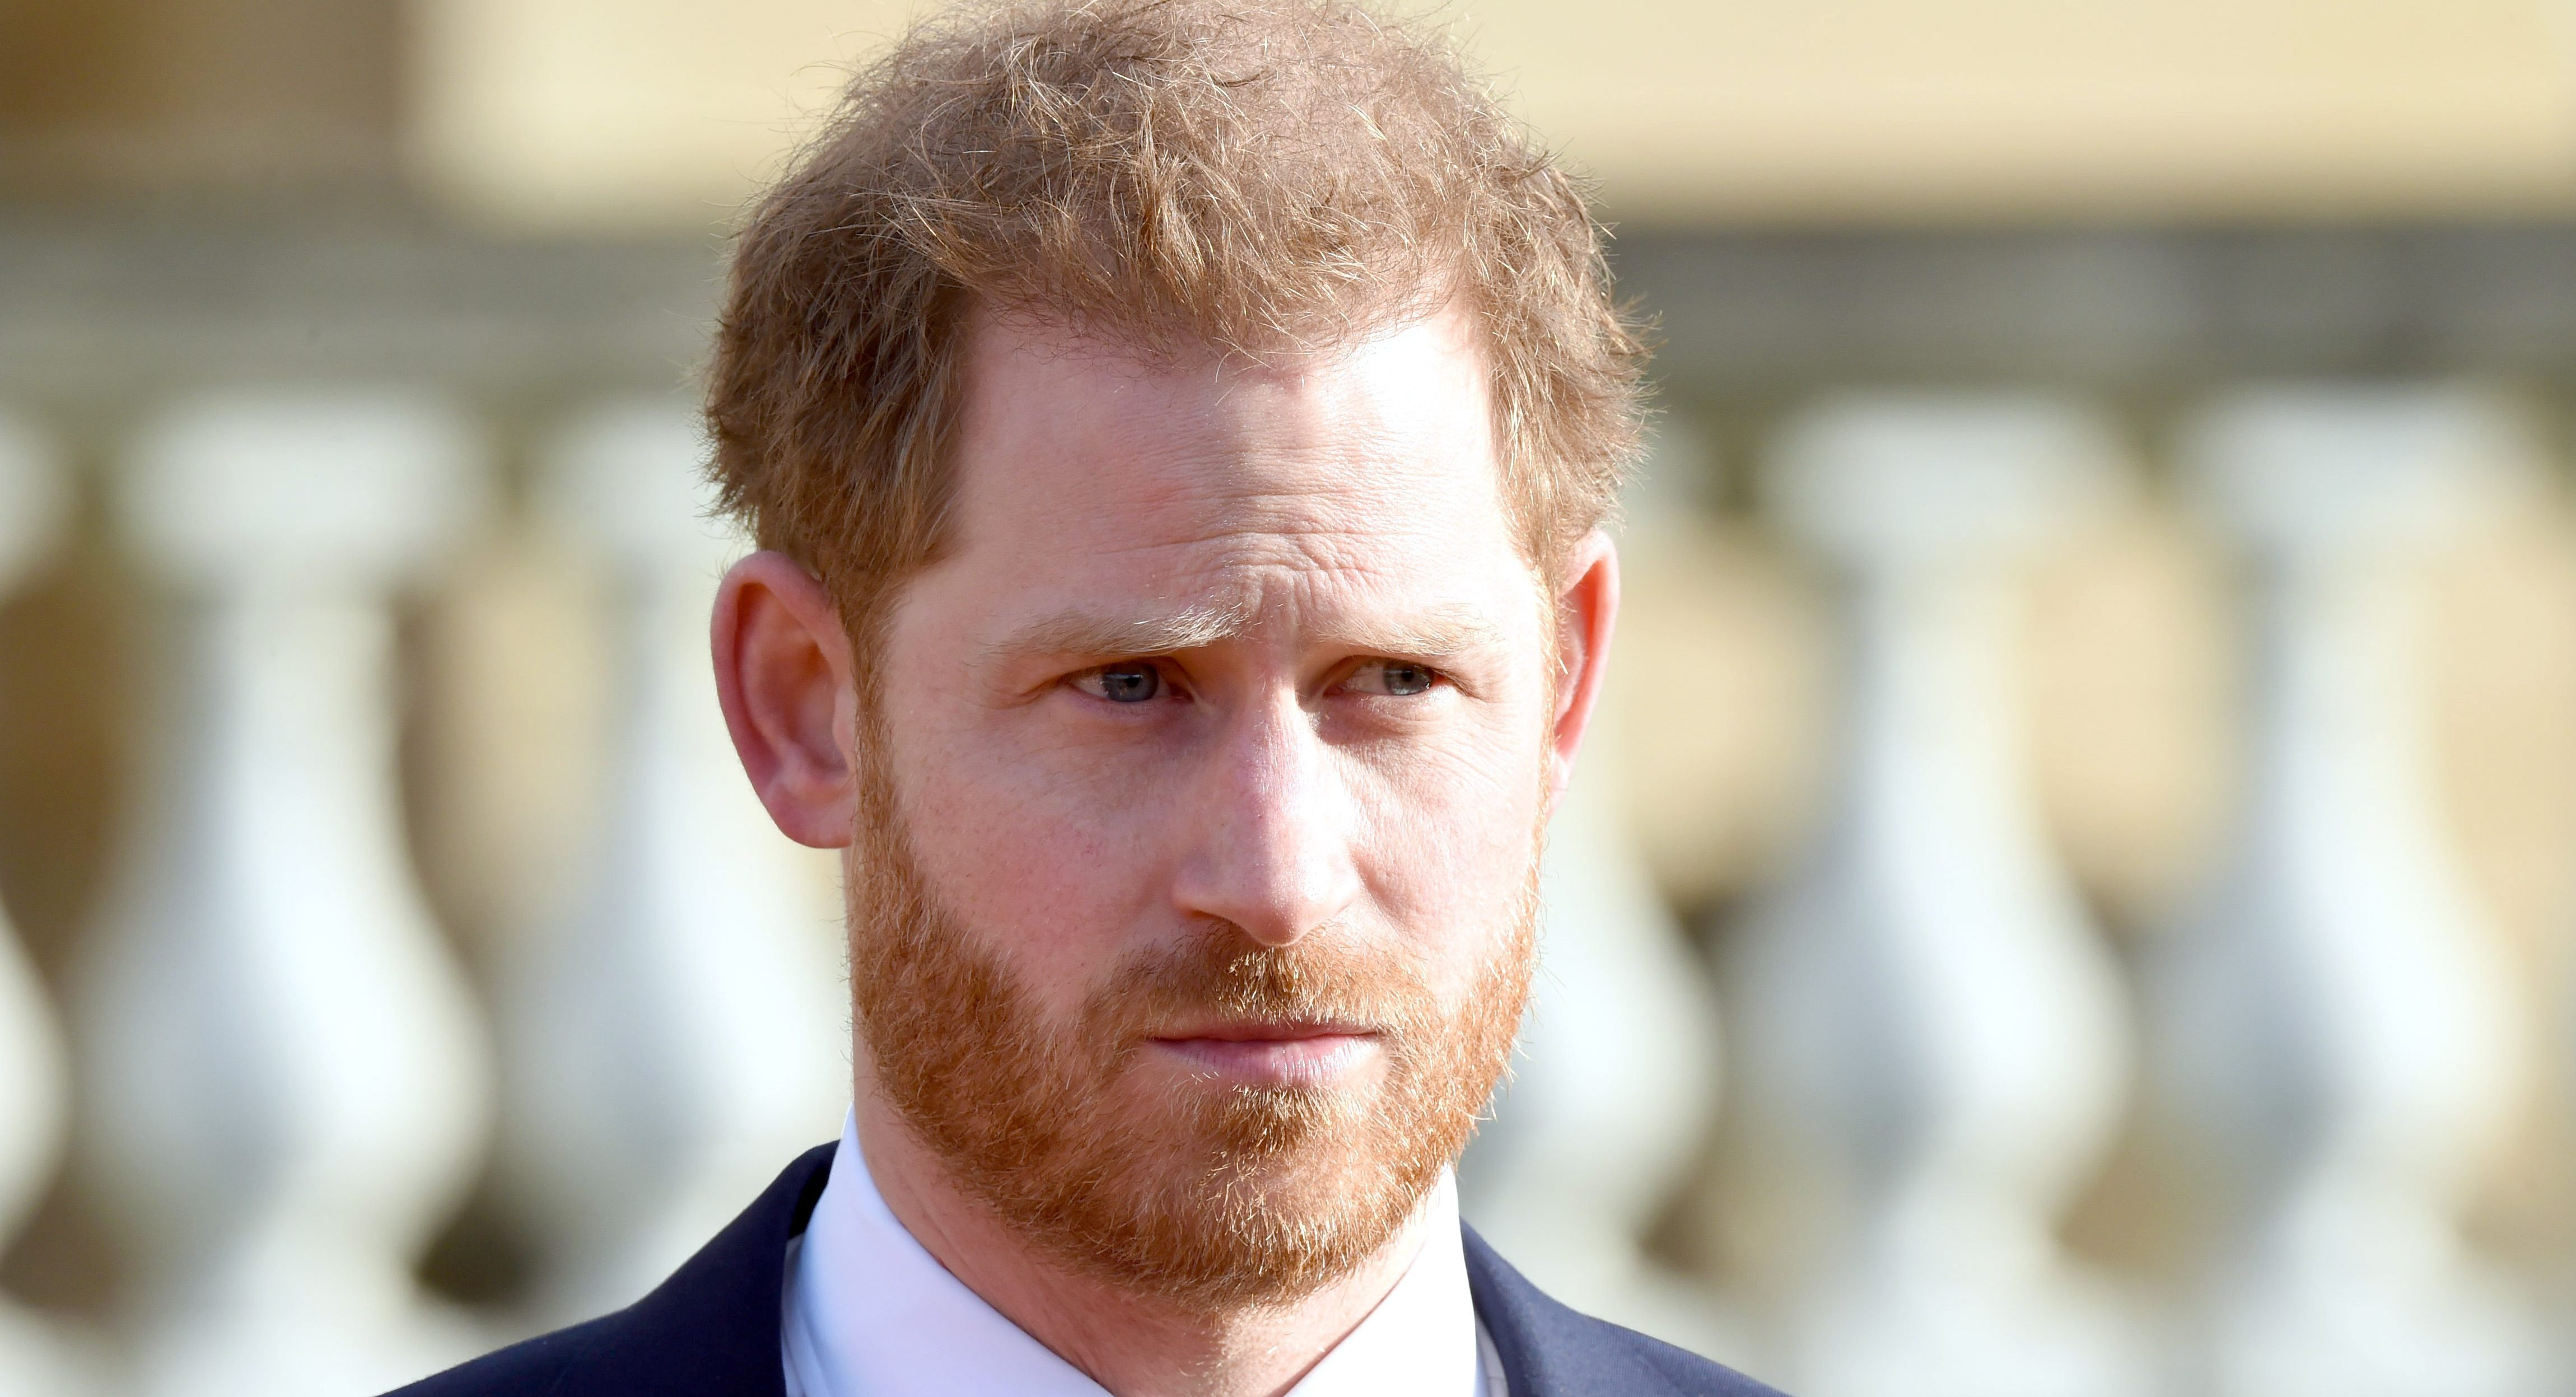 Prince Harry reveals he had 'no other option but to step back' from the royal family